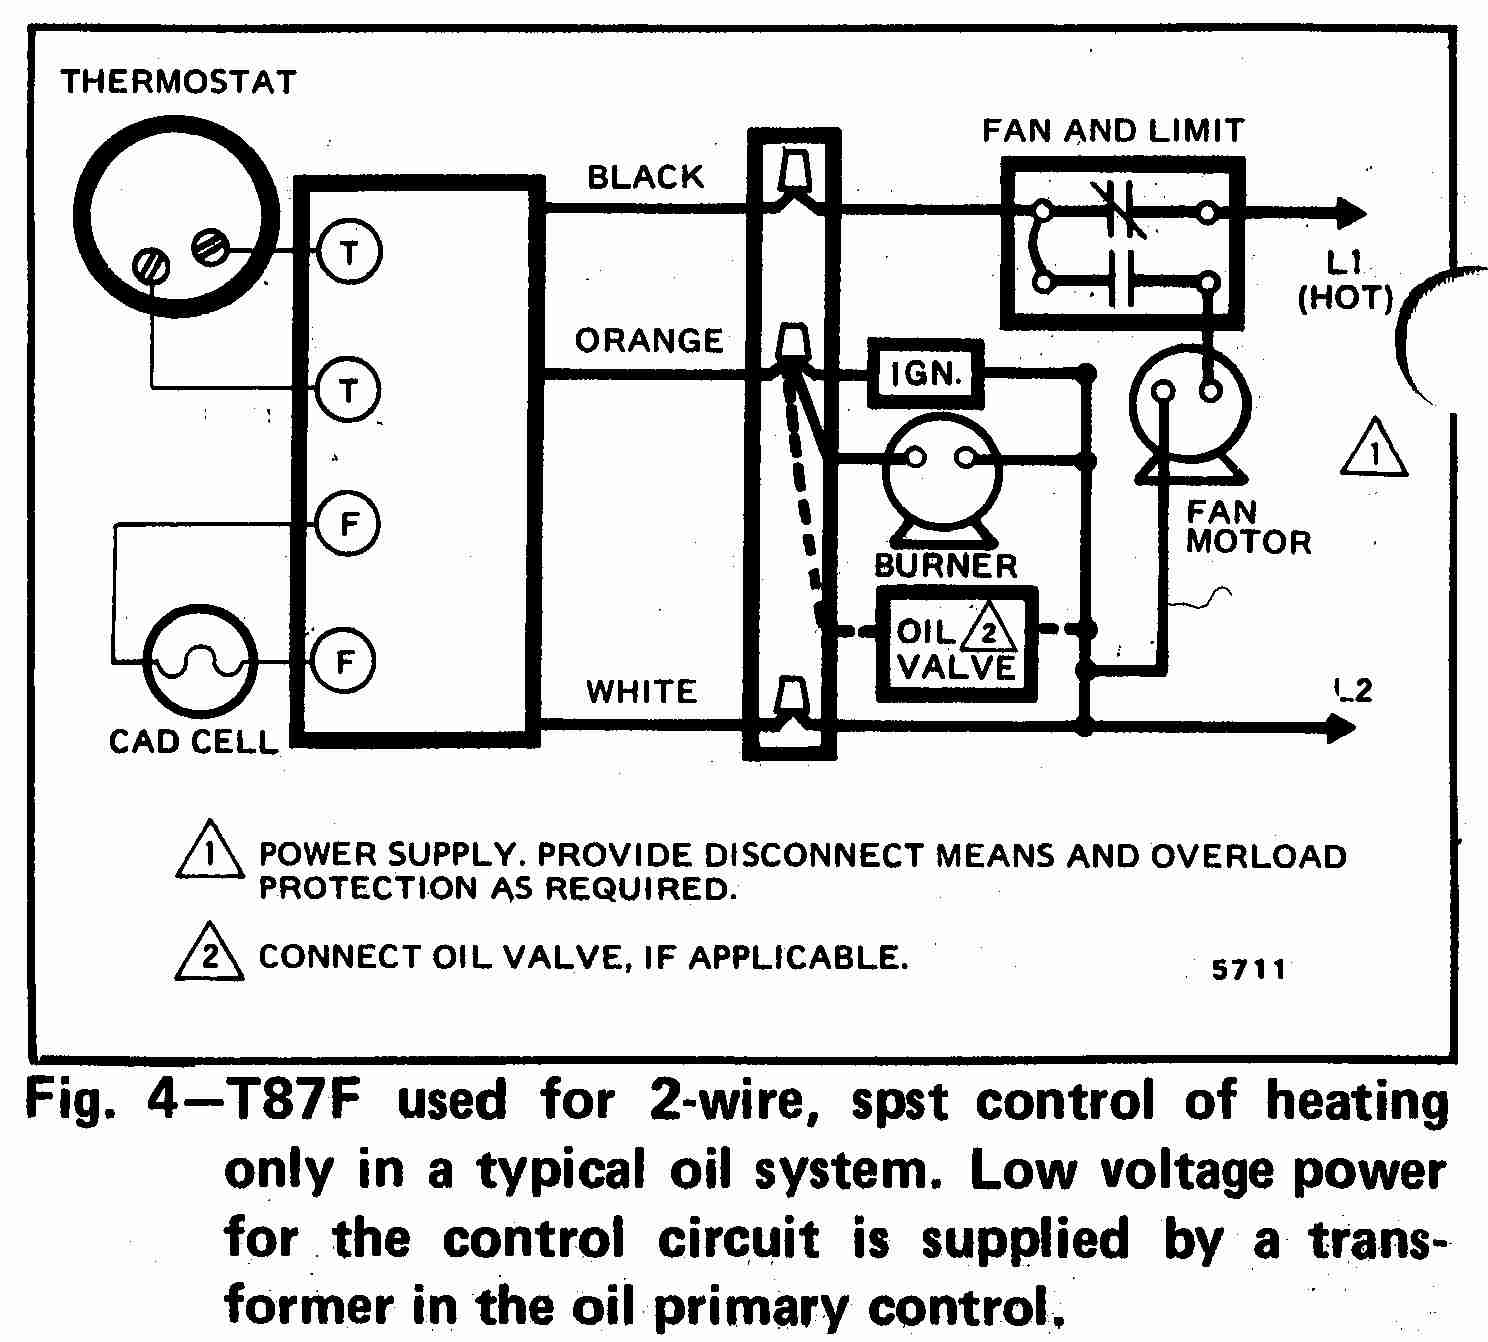 TT_T87F_0002_2W_DJF room thermostat wiring diagrams for hvac systems honeywell l4064 wiring diagram at eliteediting.co